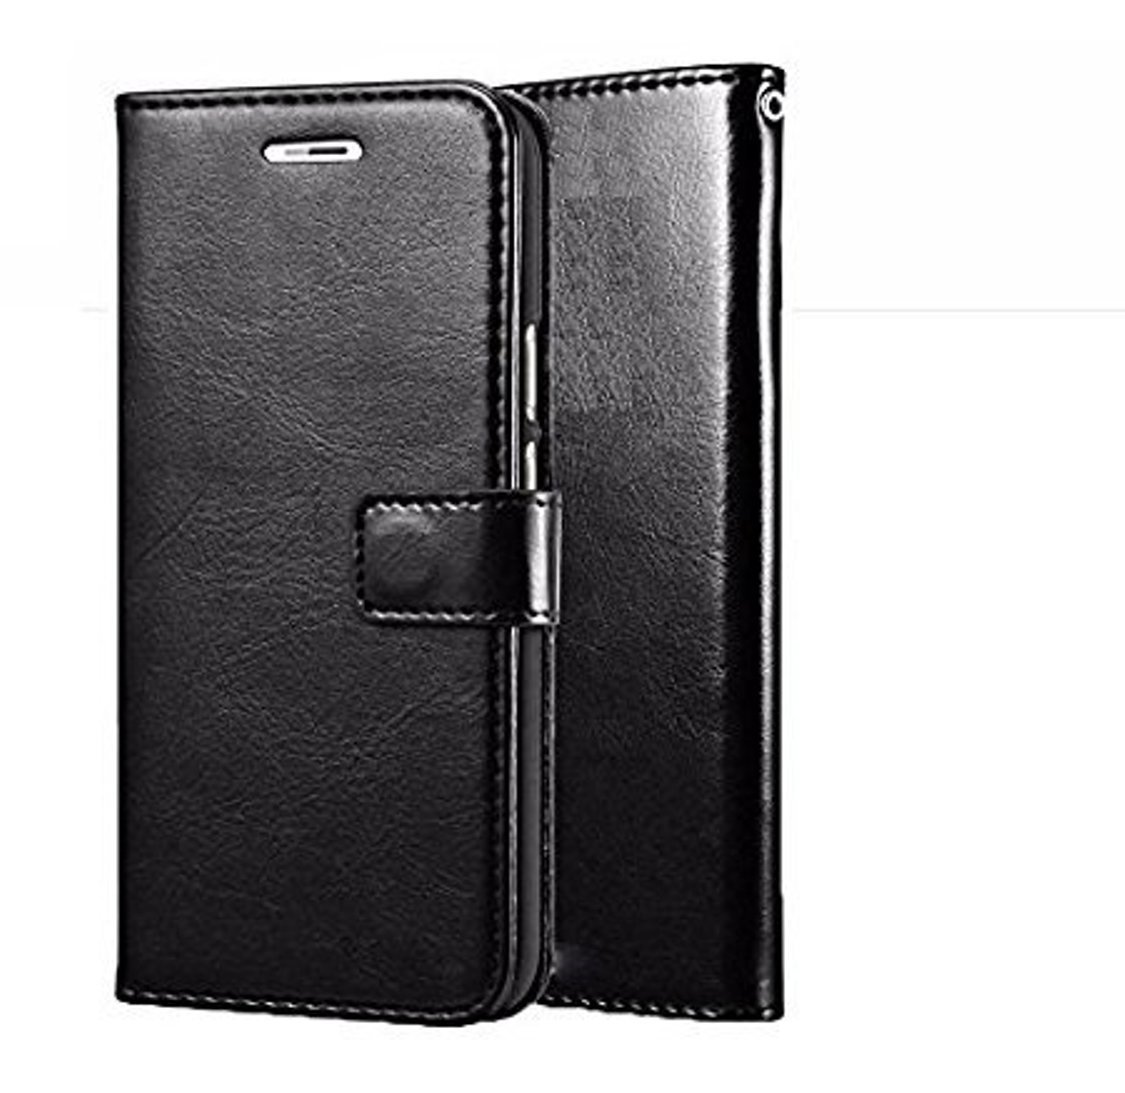 D G Kases Vintage Pu Leather Kickstand Wallet Flip Case Cover For Micromax Infinity   Black